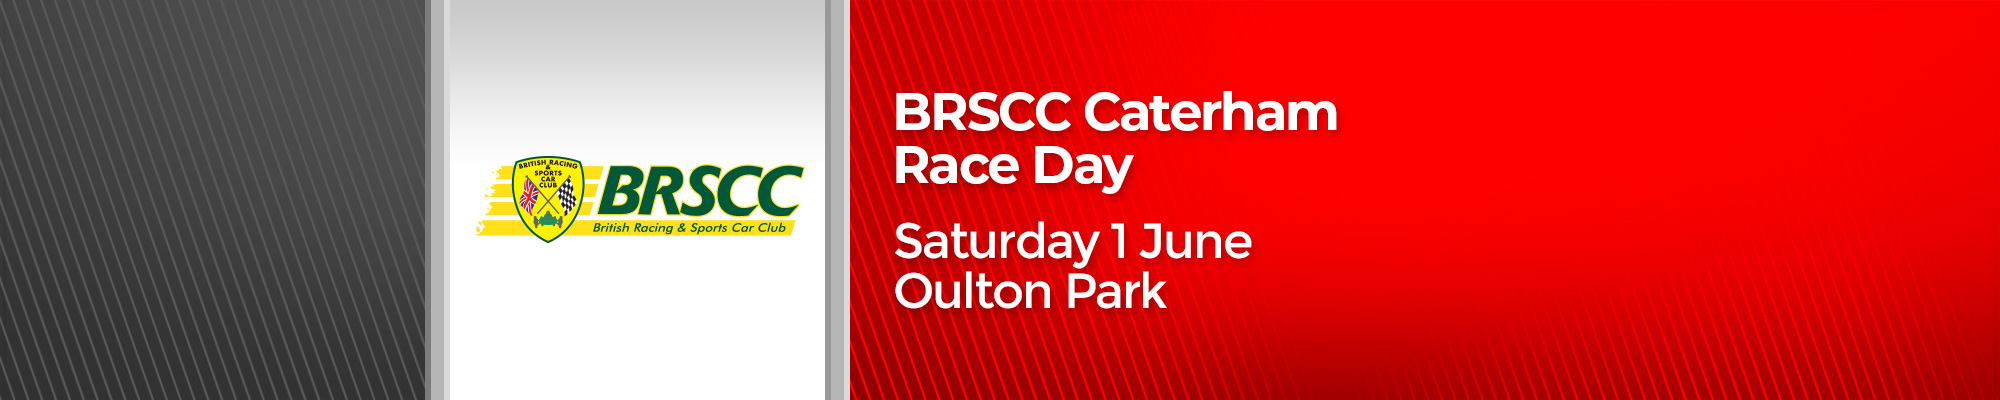 BRSCC Caterham Race Day